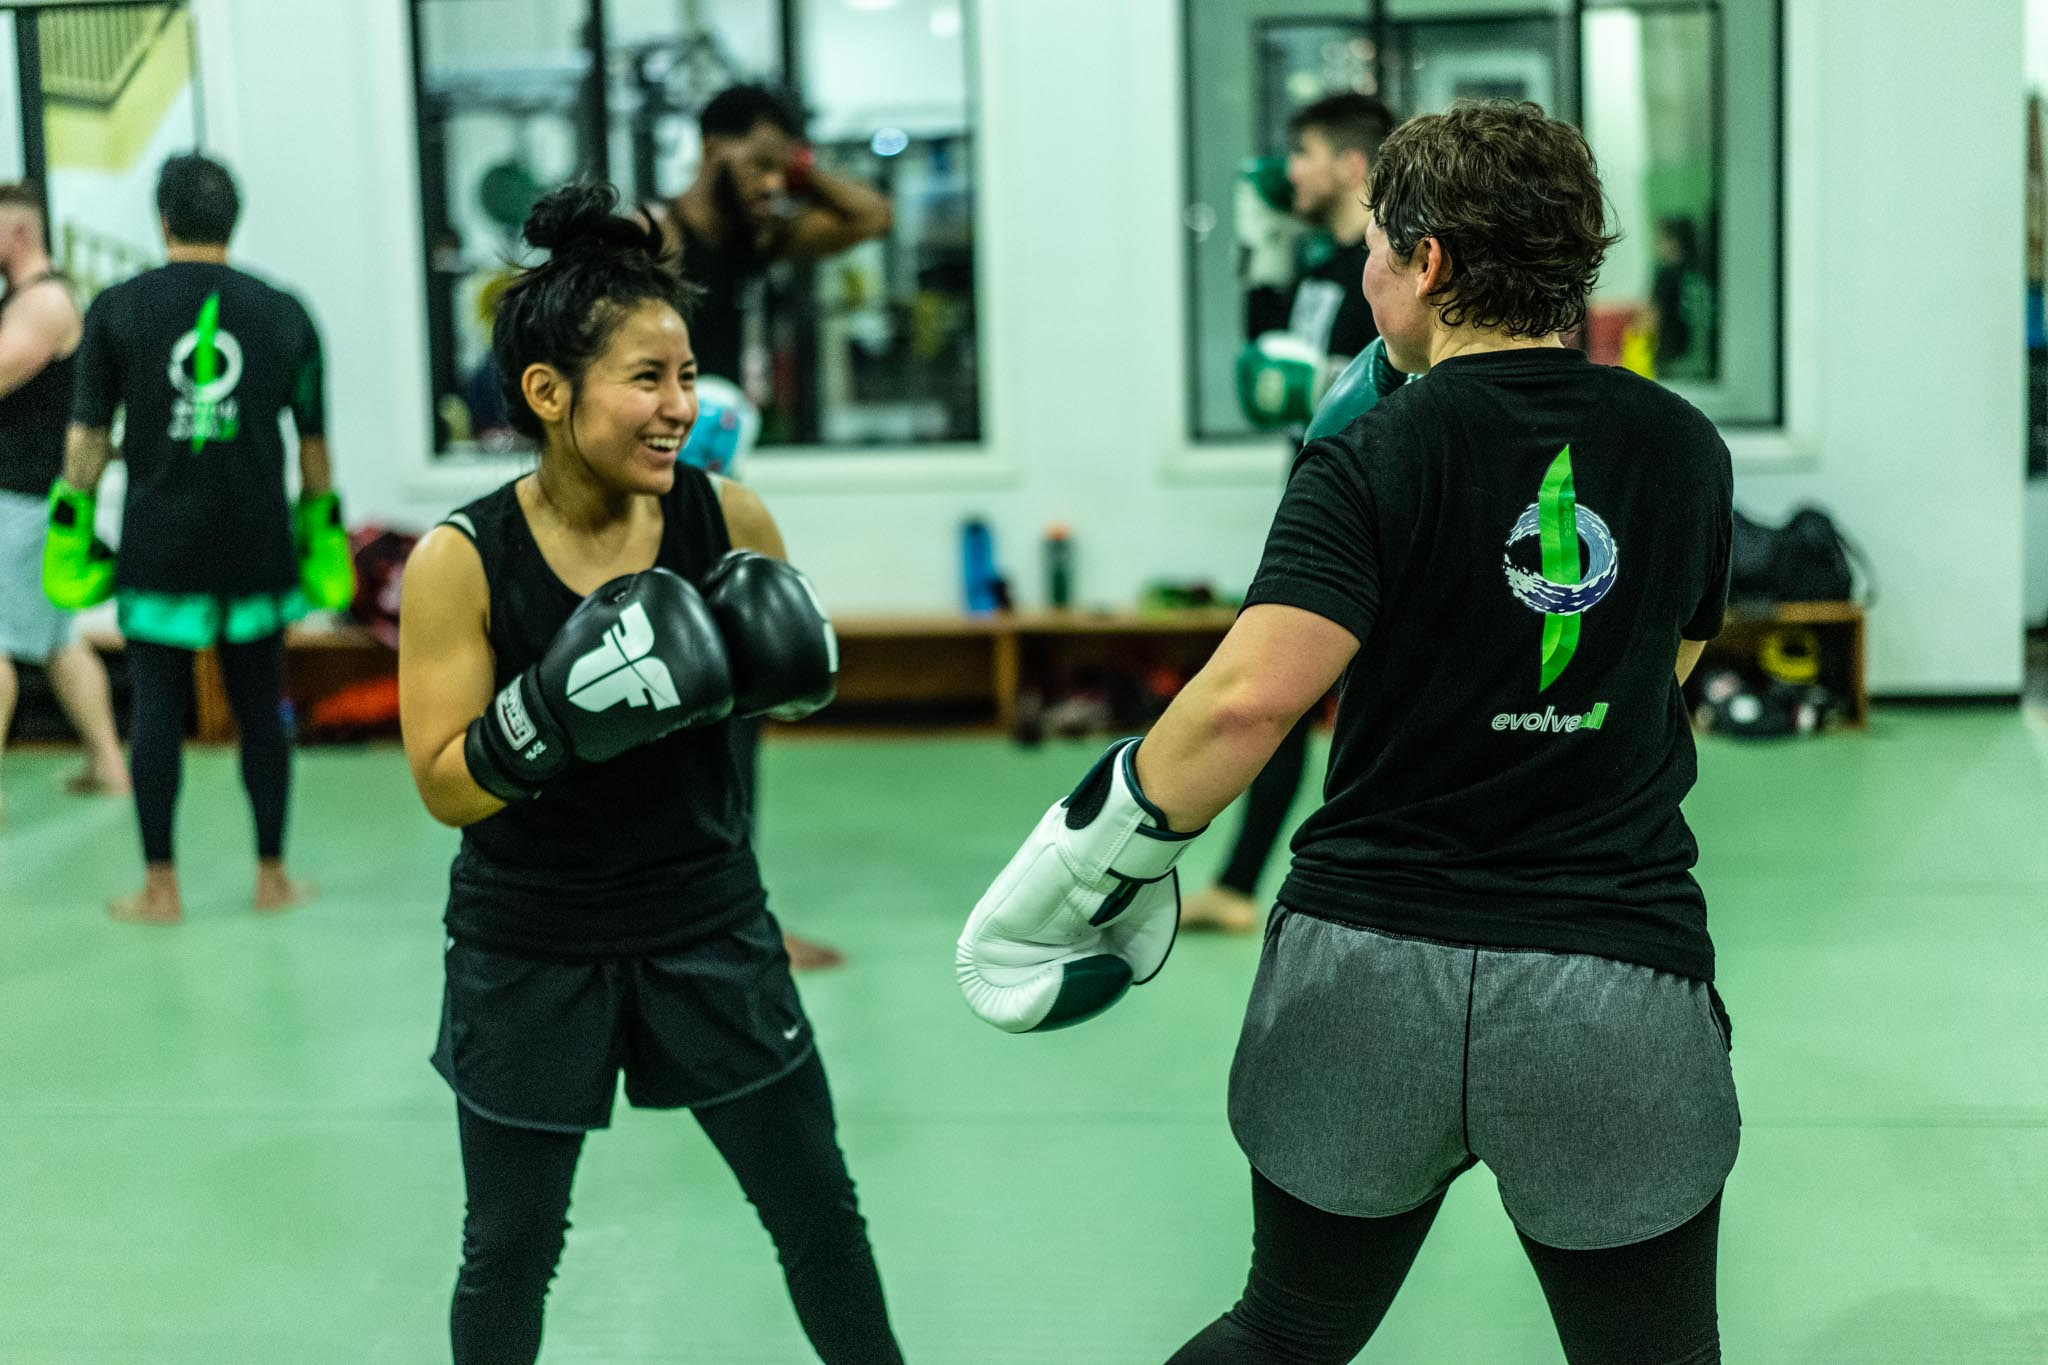 Kickboxing and Muay Thai classes at EvolveAll in Arlington Virginia